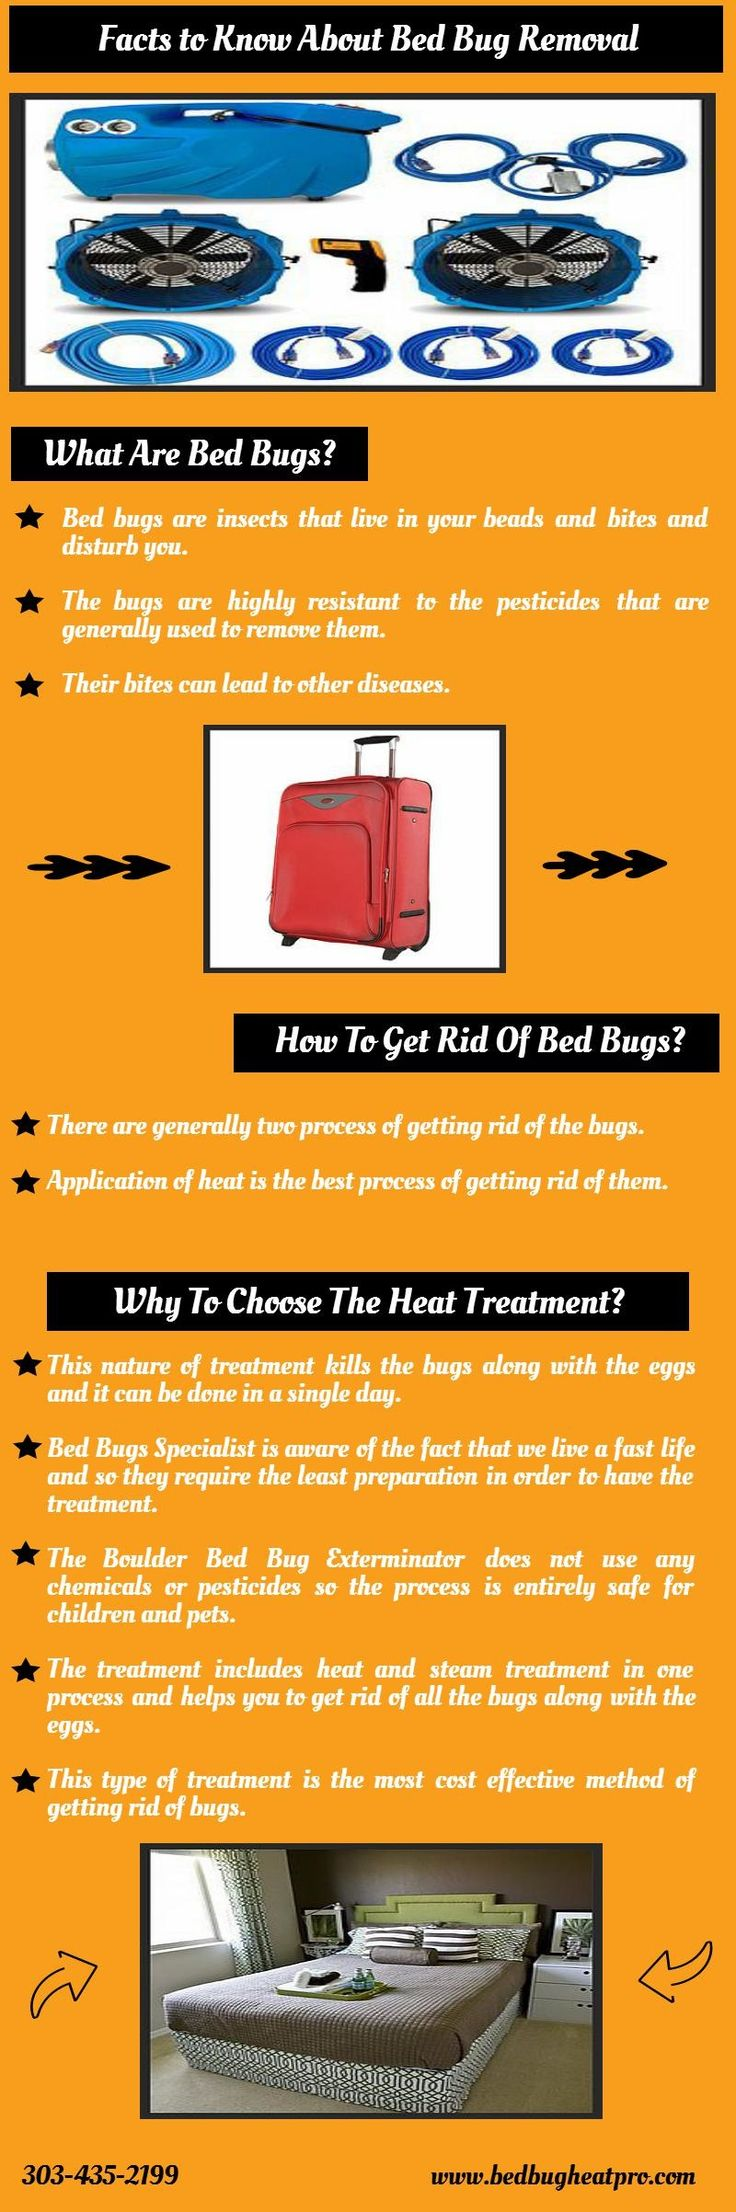 The Boulder Bed Bug Exterminator does not use any chemicals or pesticides so the process is entirely safe for children and pets. For more details, you can visit other official site @ http://www.bedbugheatpro.com